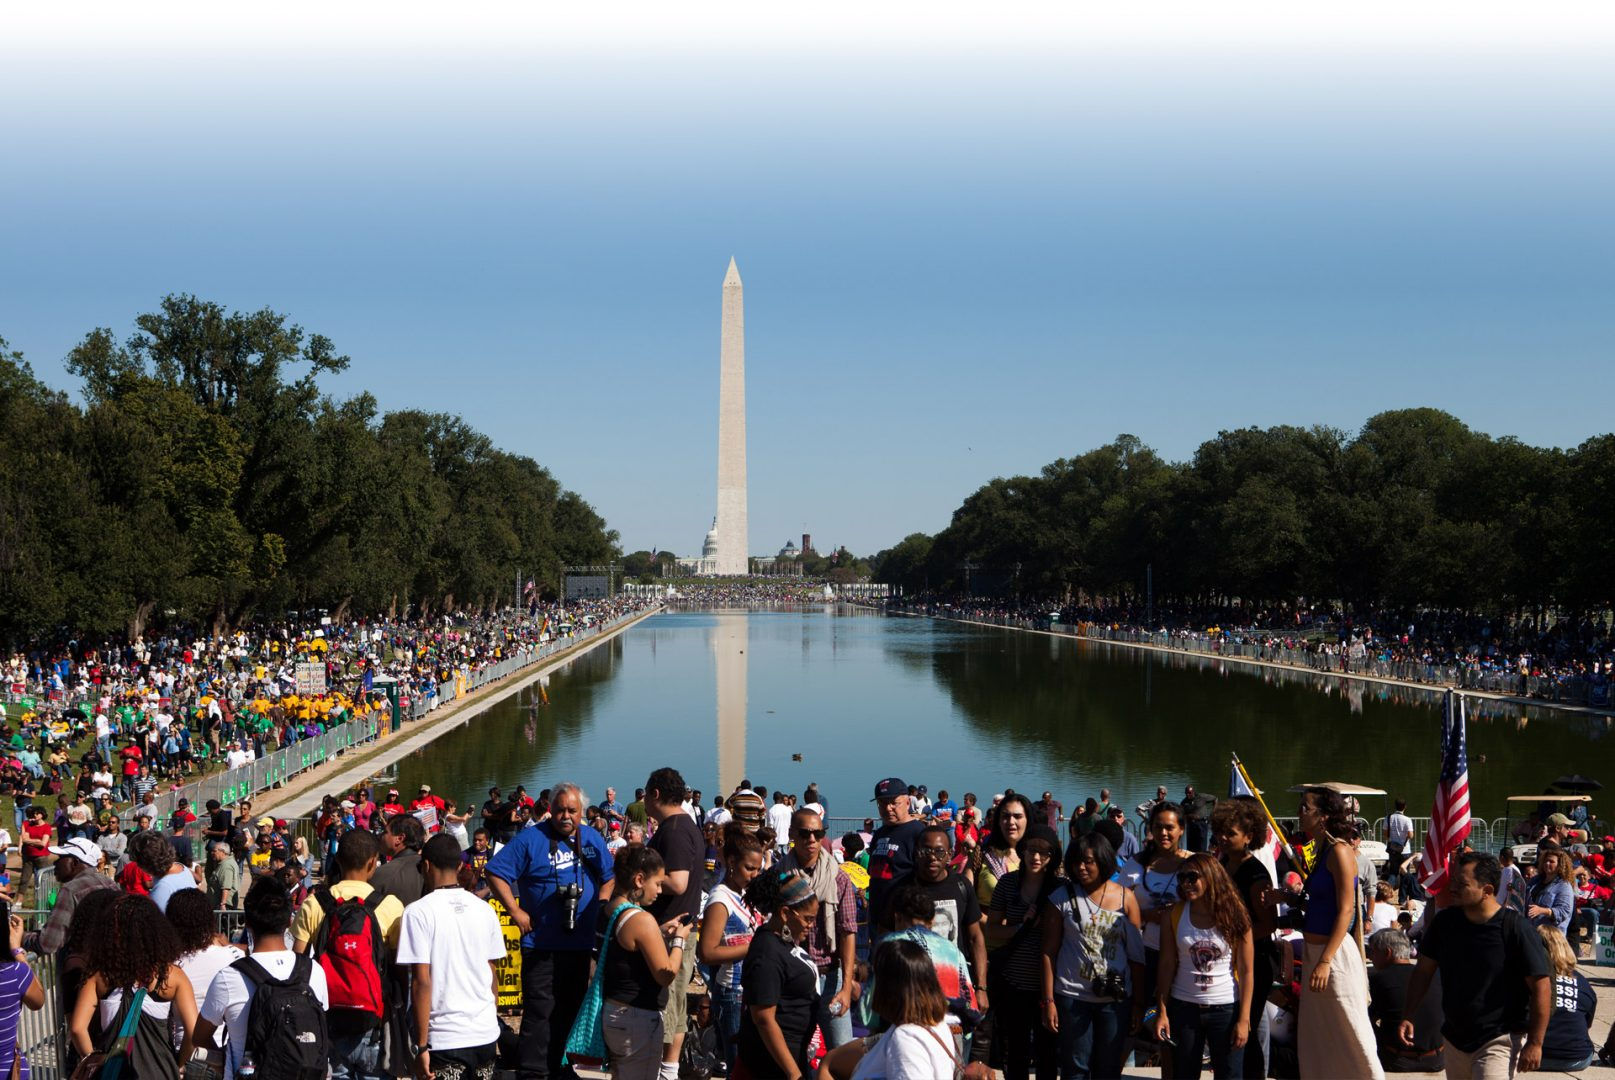 Crowds in Washington D.C. march for civil rights in America